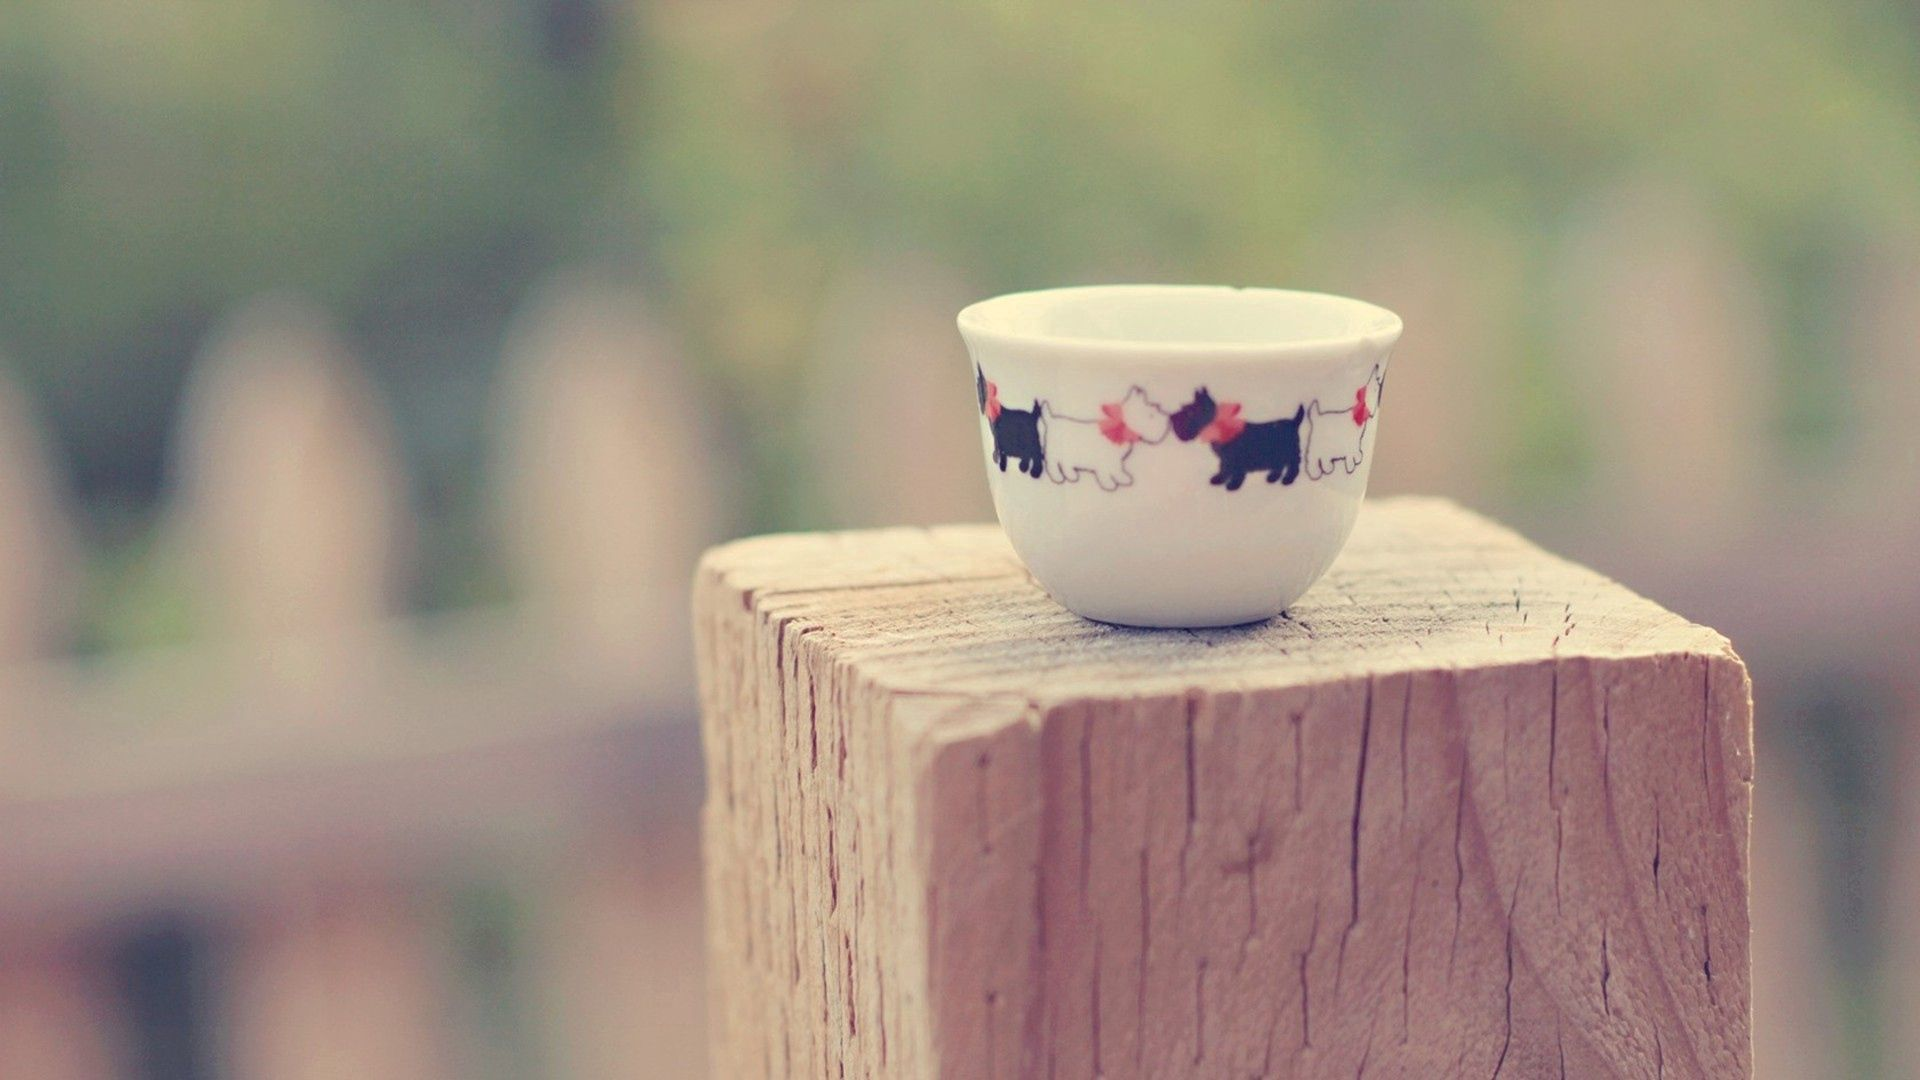 68068 download wallpaper Miscellanea, Miscellaneous, Cup, Saucer, Doggies, Dogs, Tablewares, Stump screensavers and pictures for free